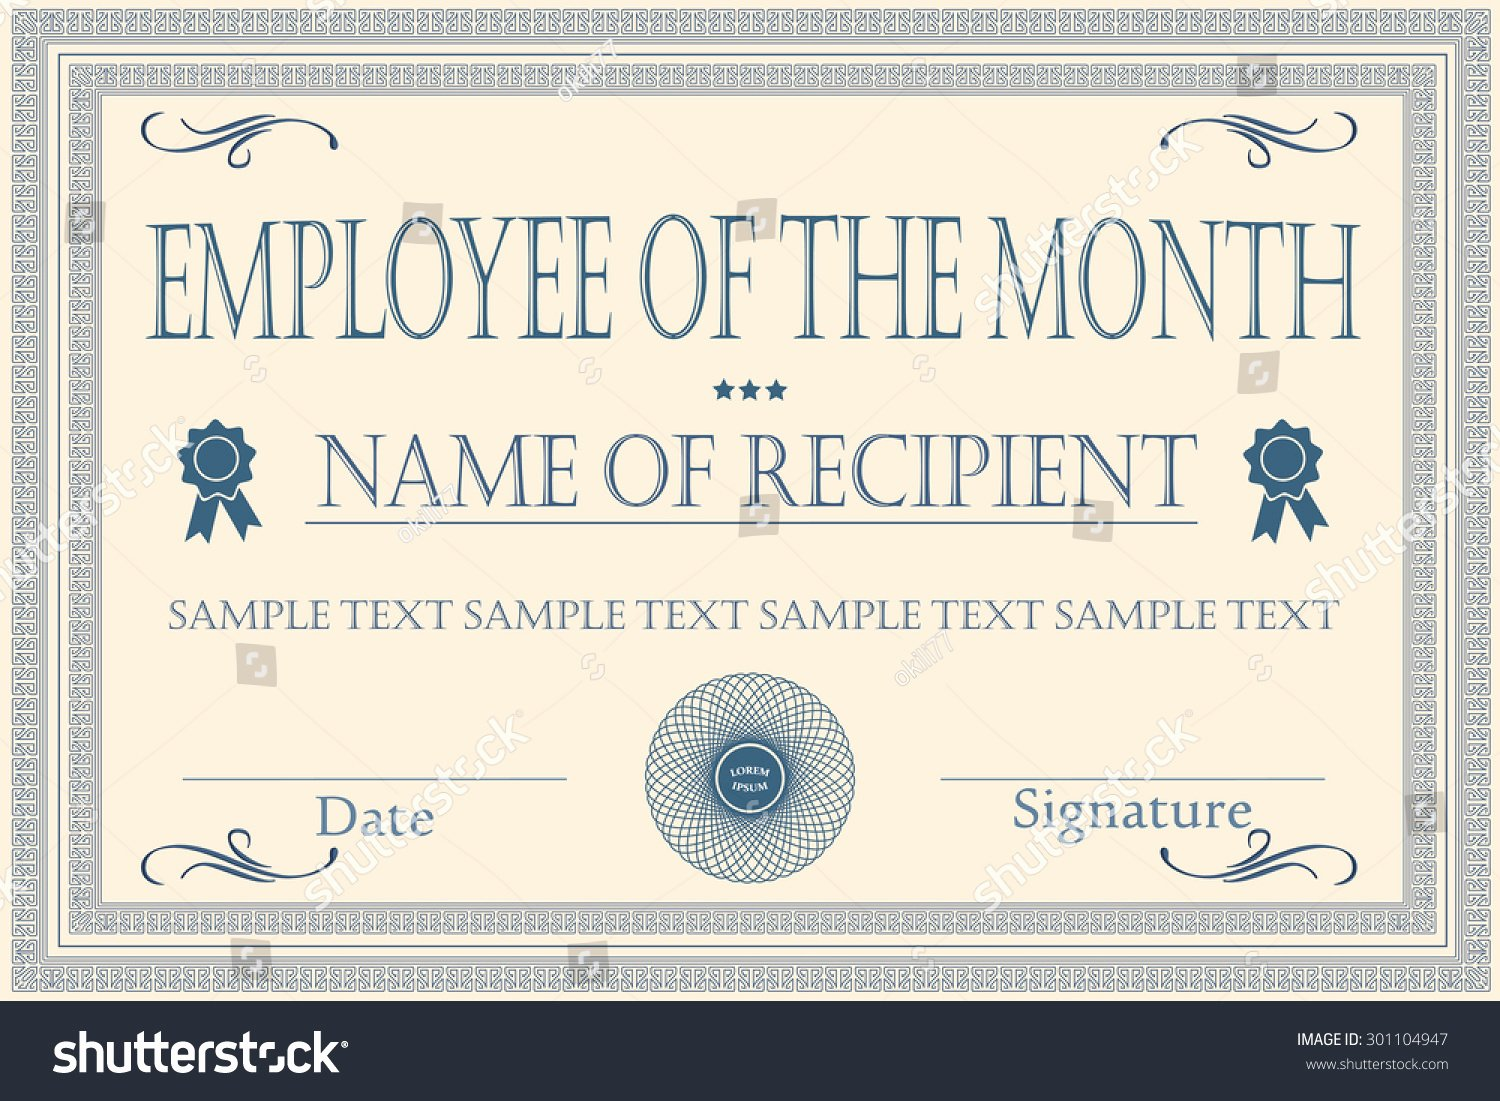 Employee Of the Month Online Free Unique Line Image & Editor Shutterstock Editor